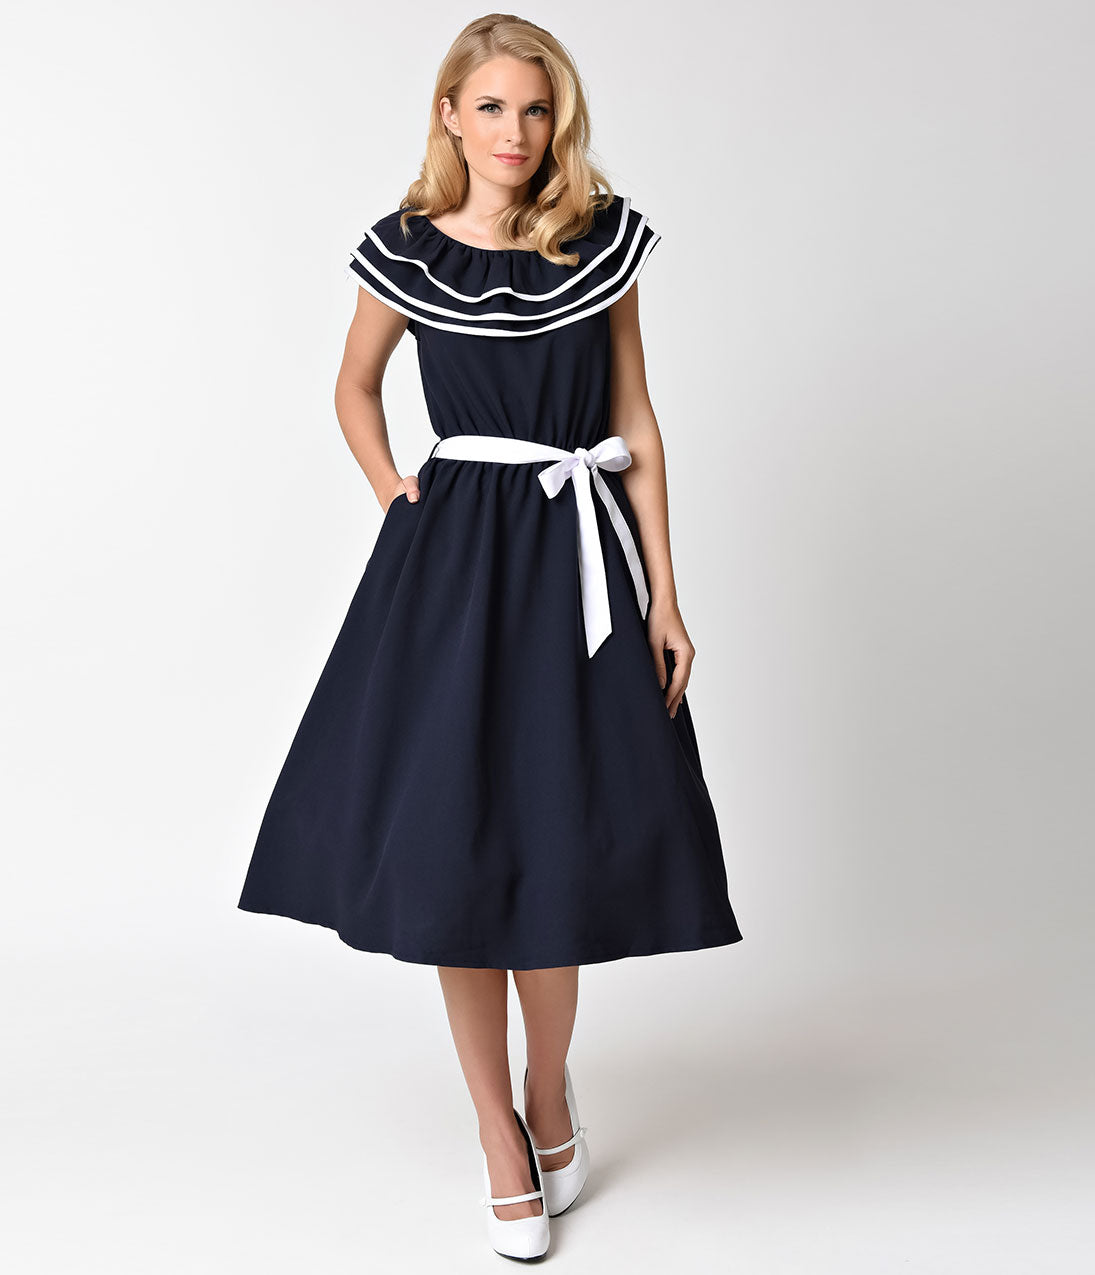 Vintage 50s Dresses: 8 Classic Retro Styles Voodoo Vixen Navy Blue Nautical Ruffle Hope Swing Dress $54.00 AT vintagedancer.com